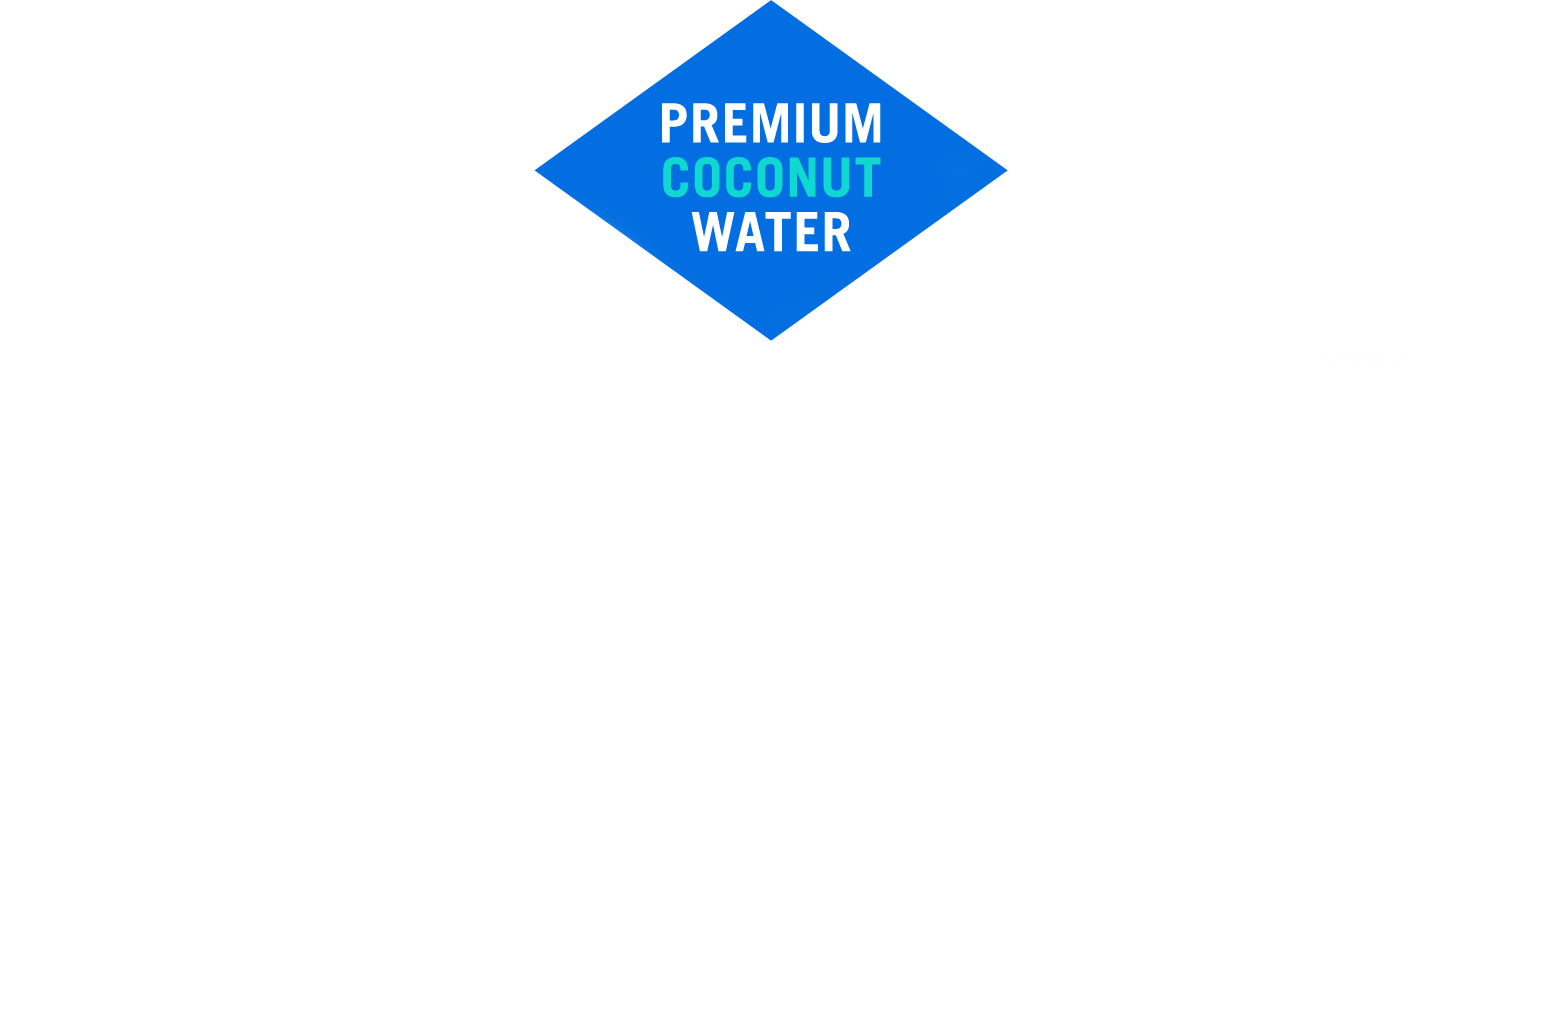 cocoactive